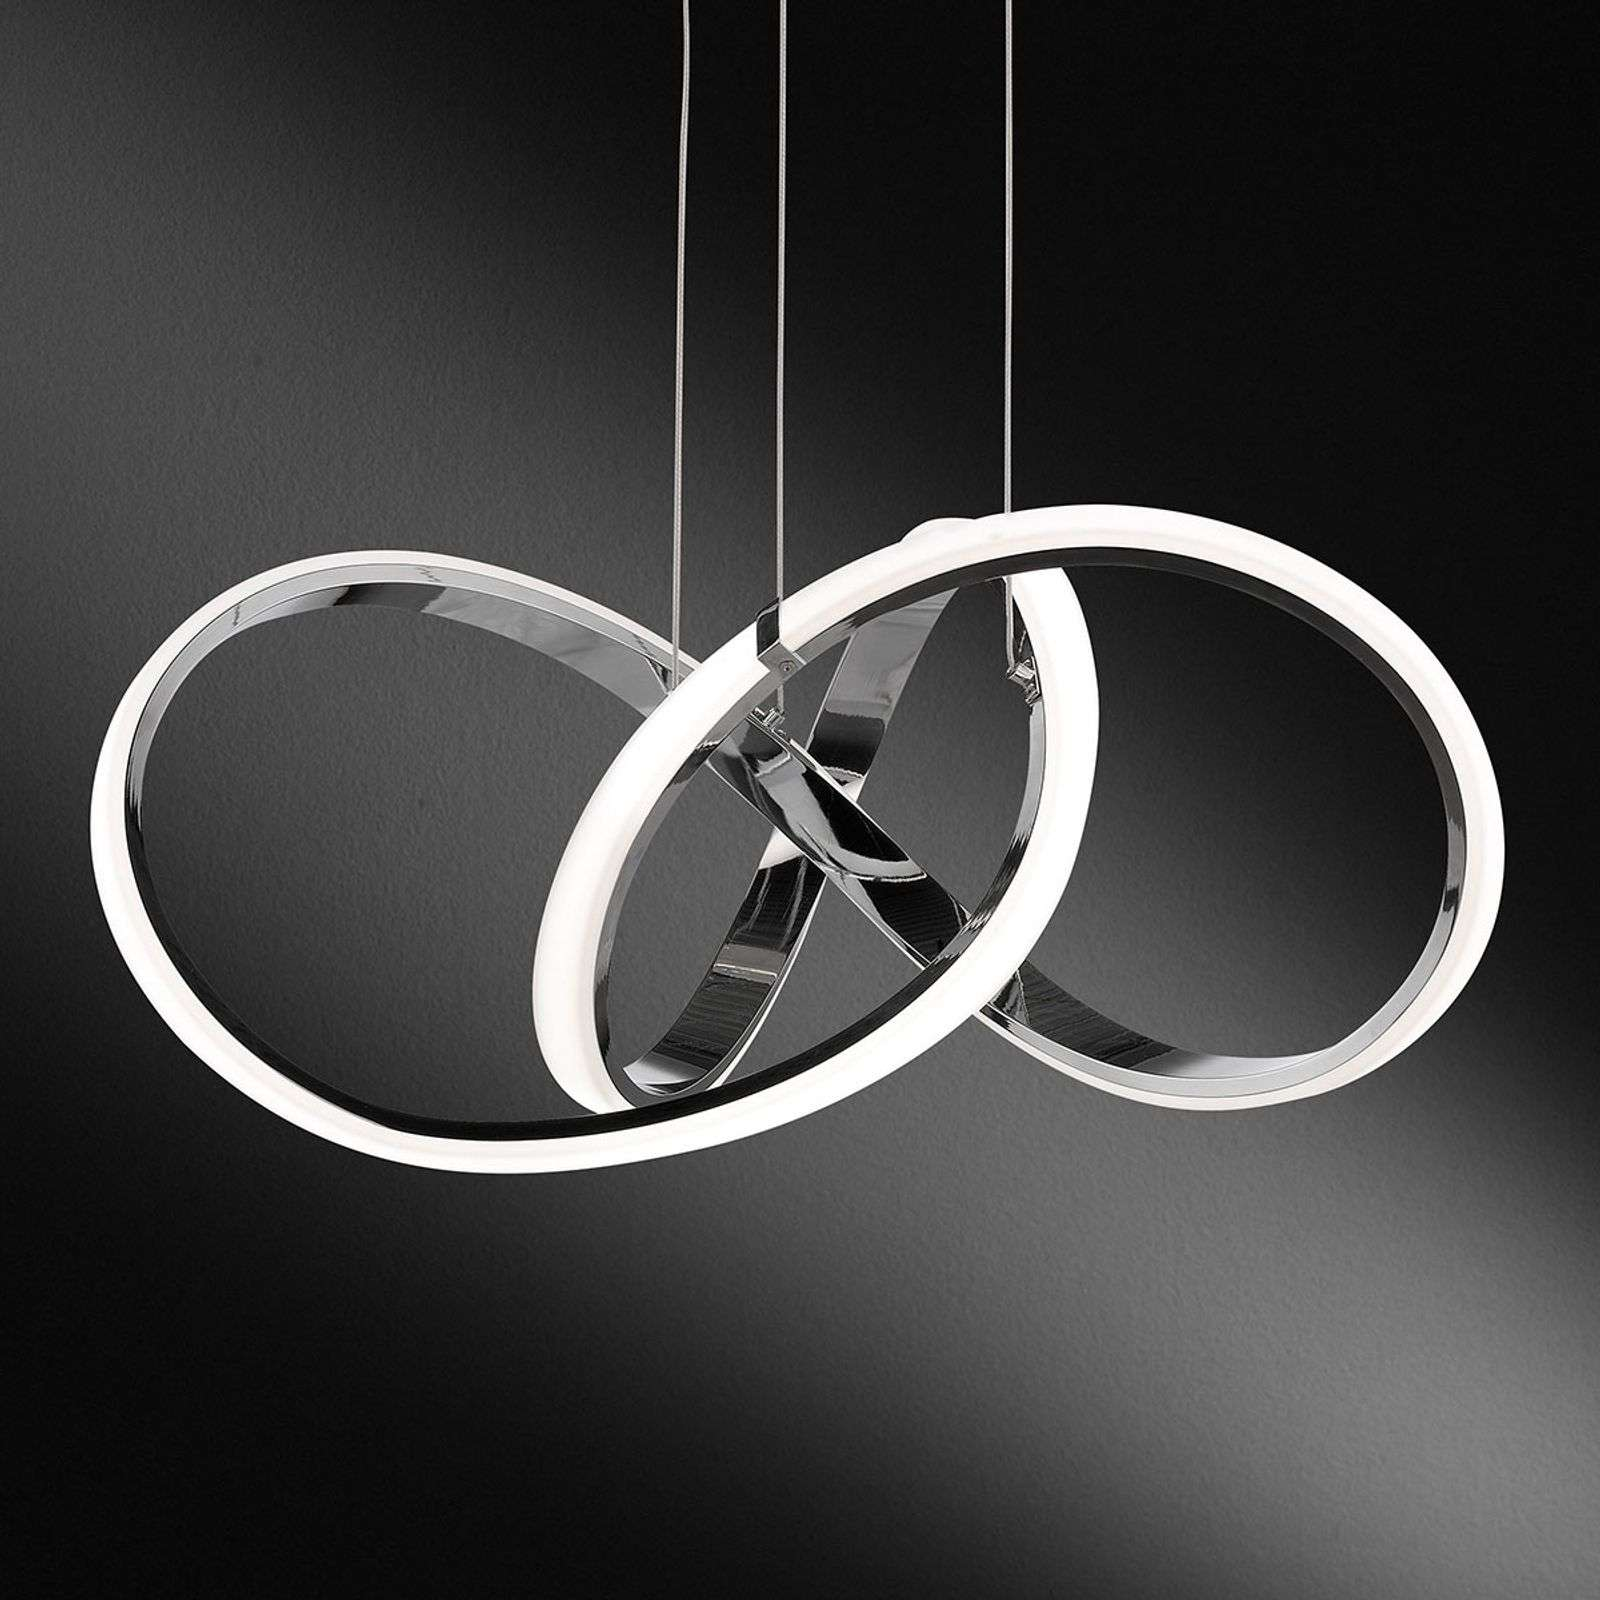 Suspension LED chromée Indigo, dimmable